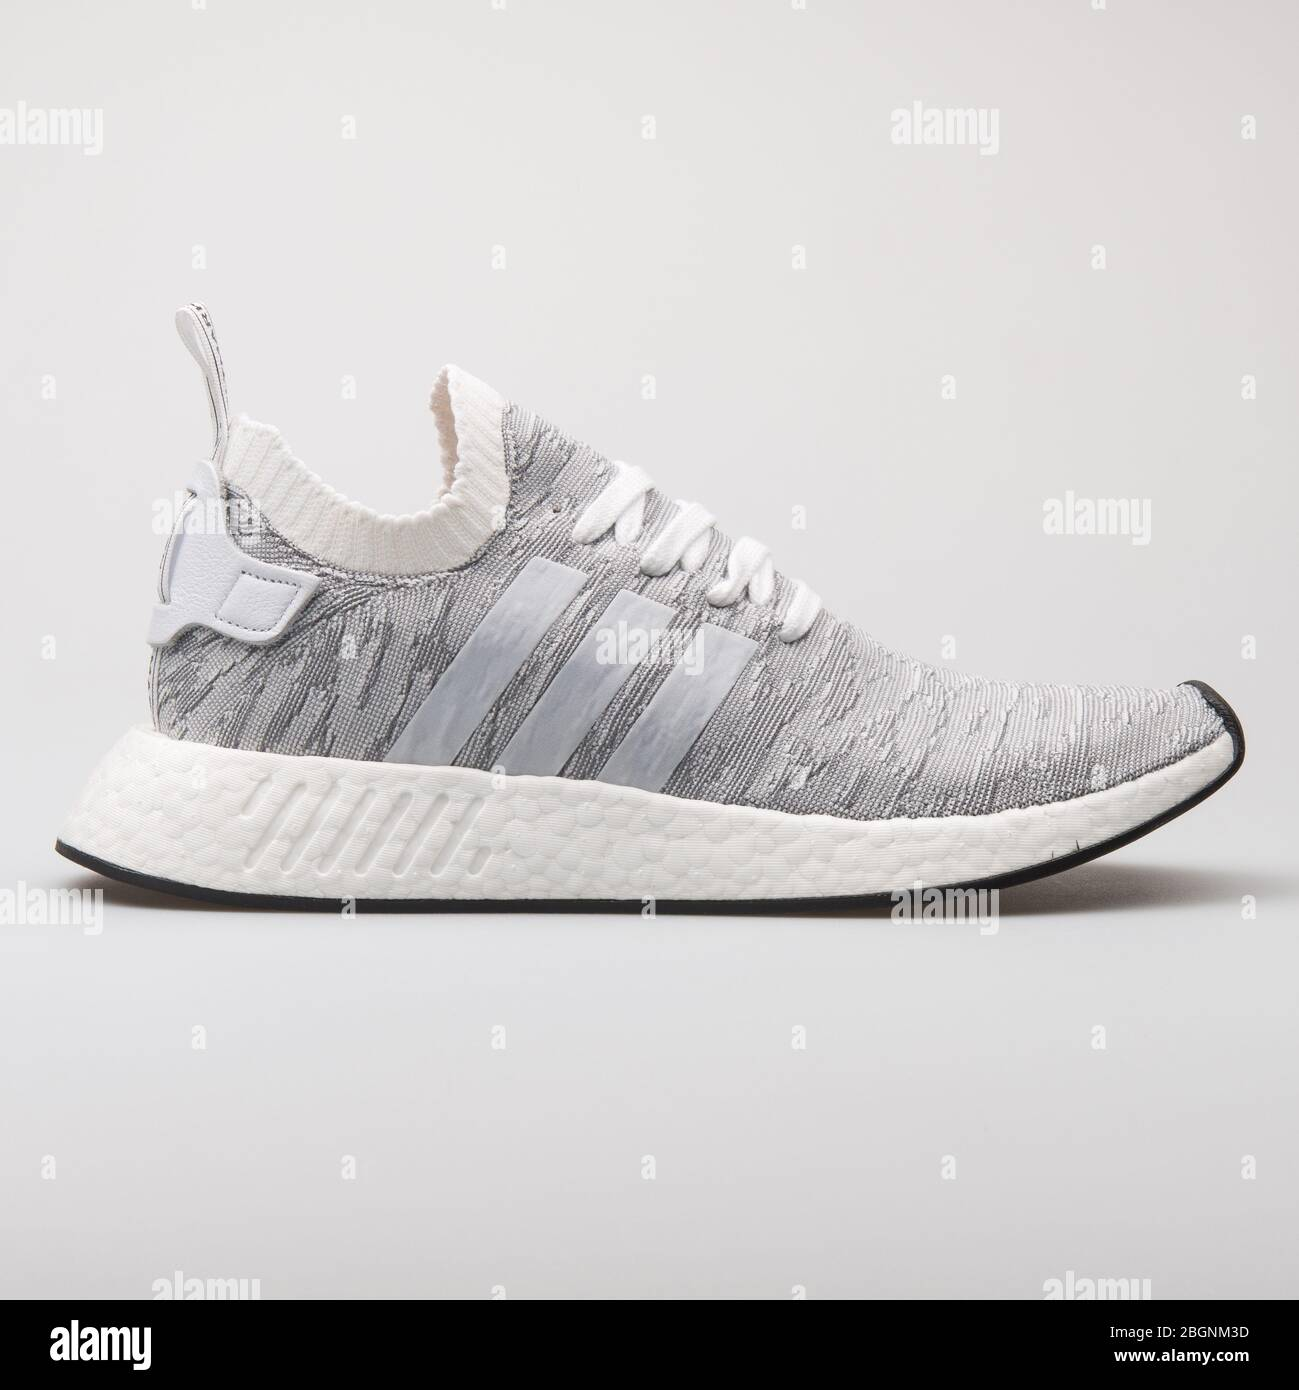 Vienna Austria August 6 2017 Adidas Nmd R2 Pk White And Grey